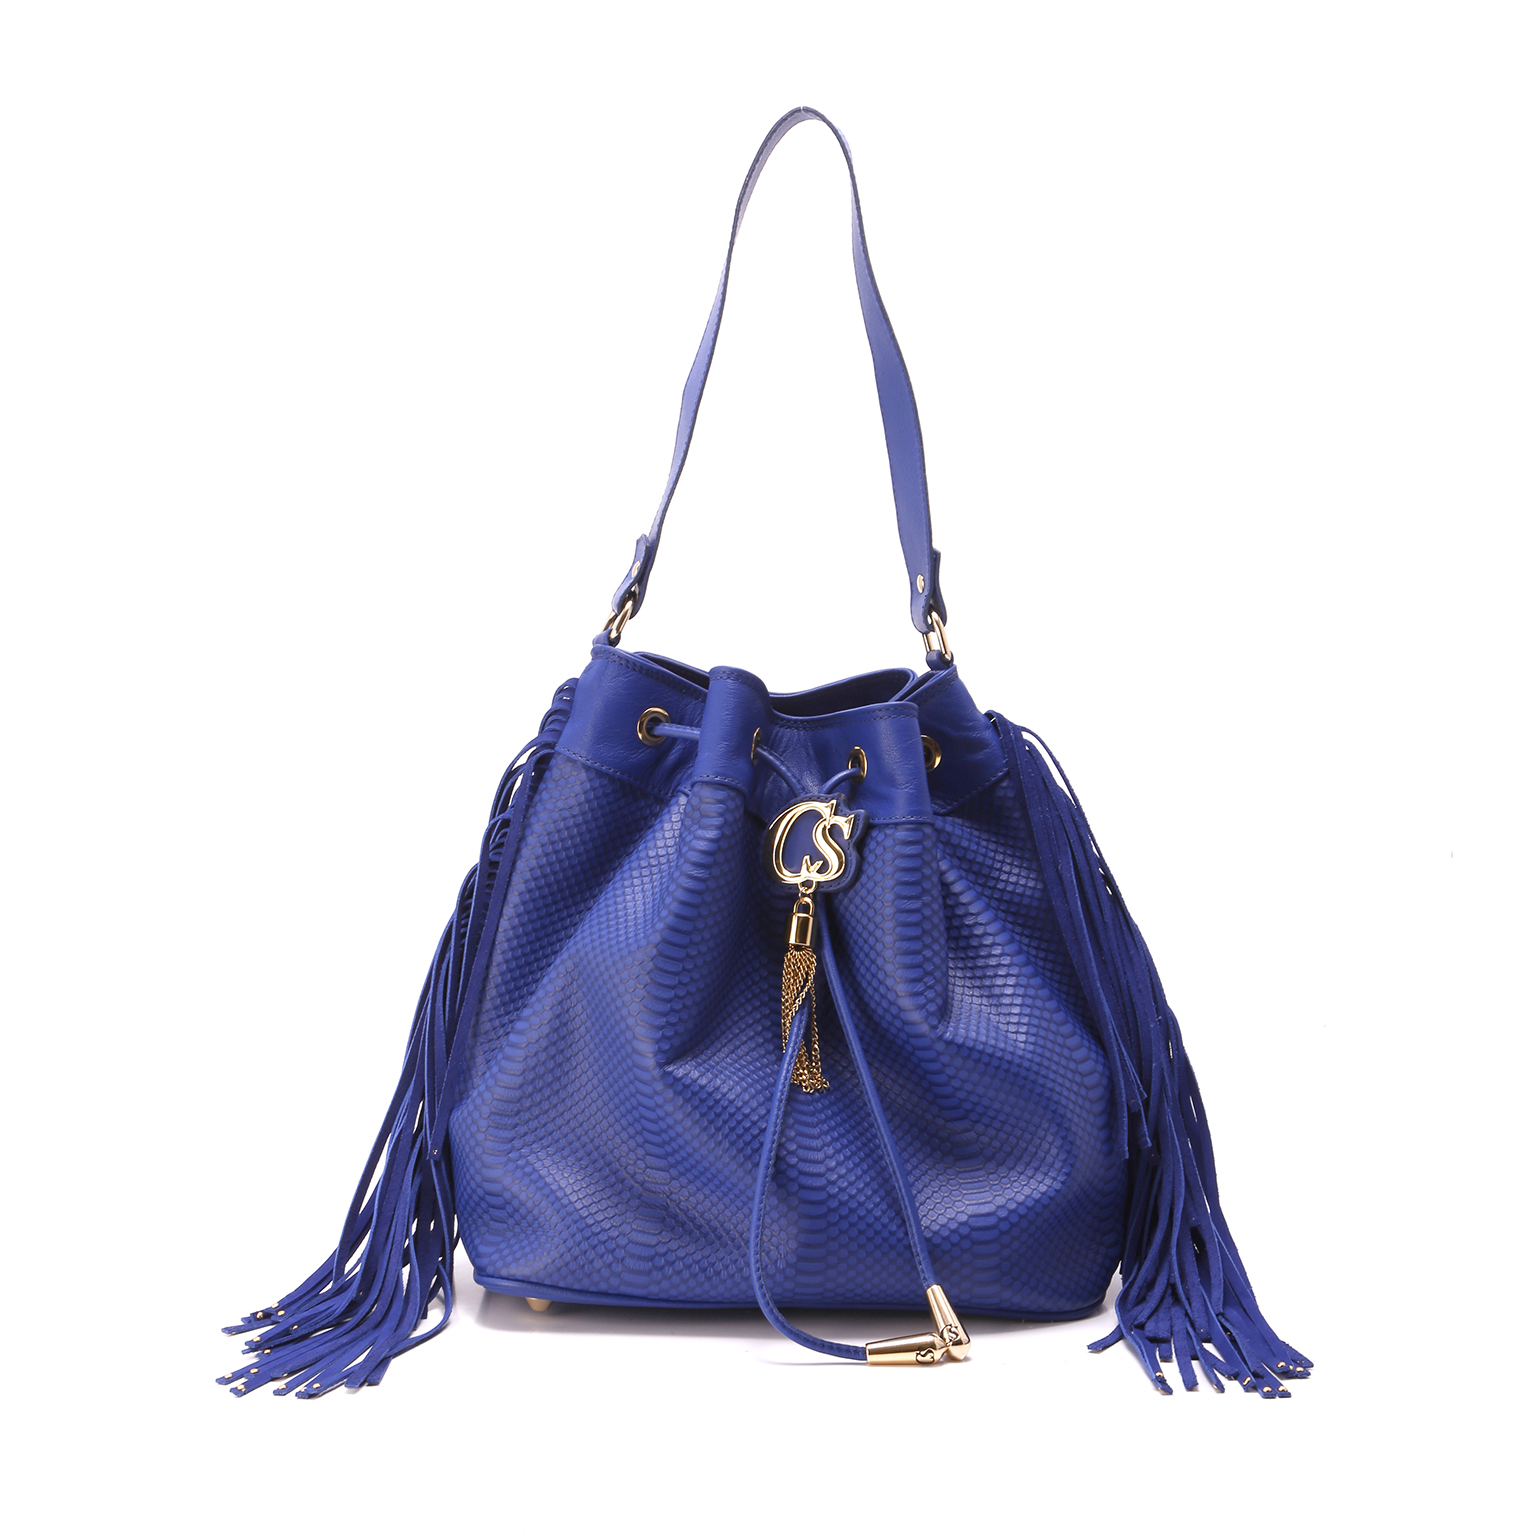 Carmen_steffens_-_Bucket_bag_azul_royal_-_R$_999,90_-_B408064261F_1[1]